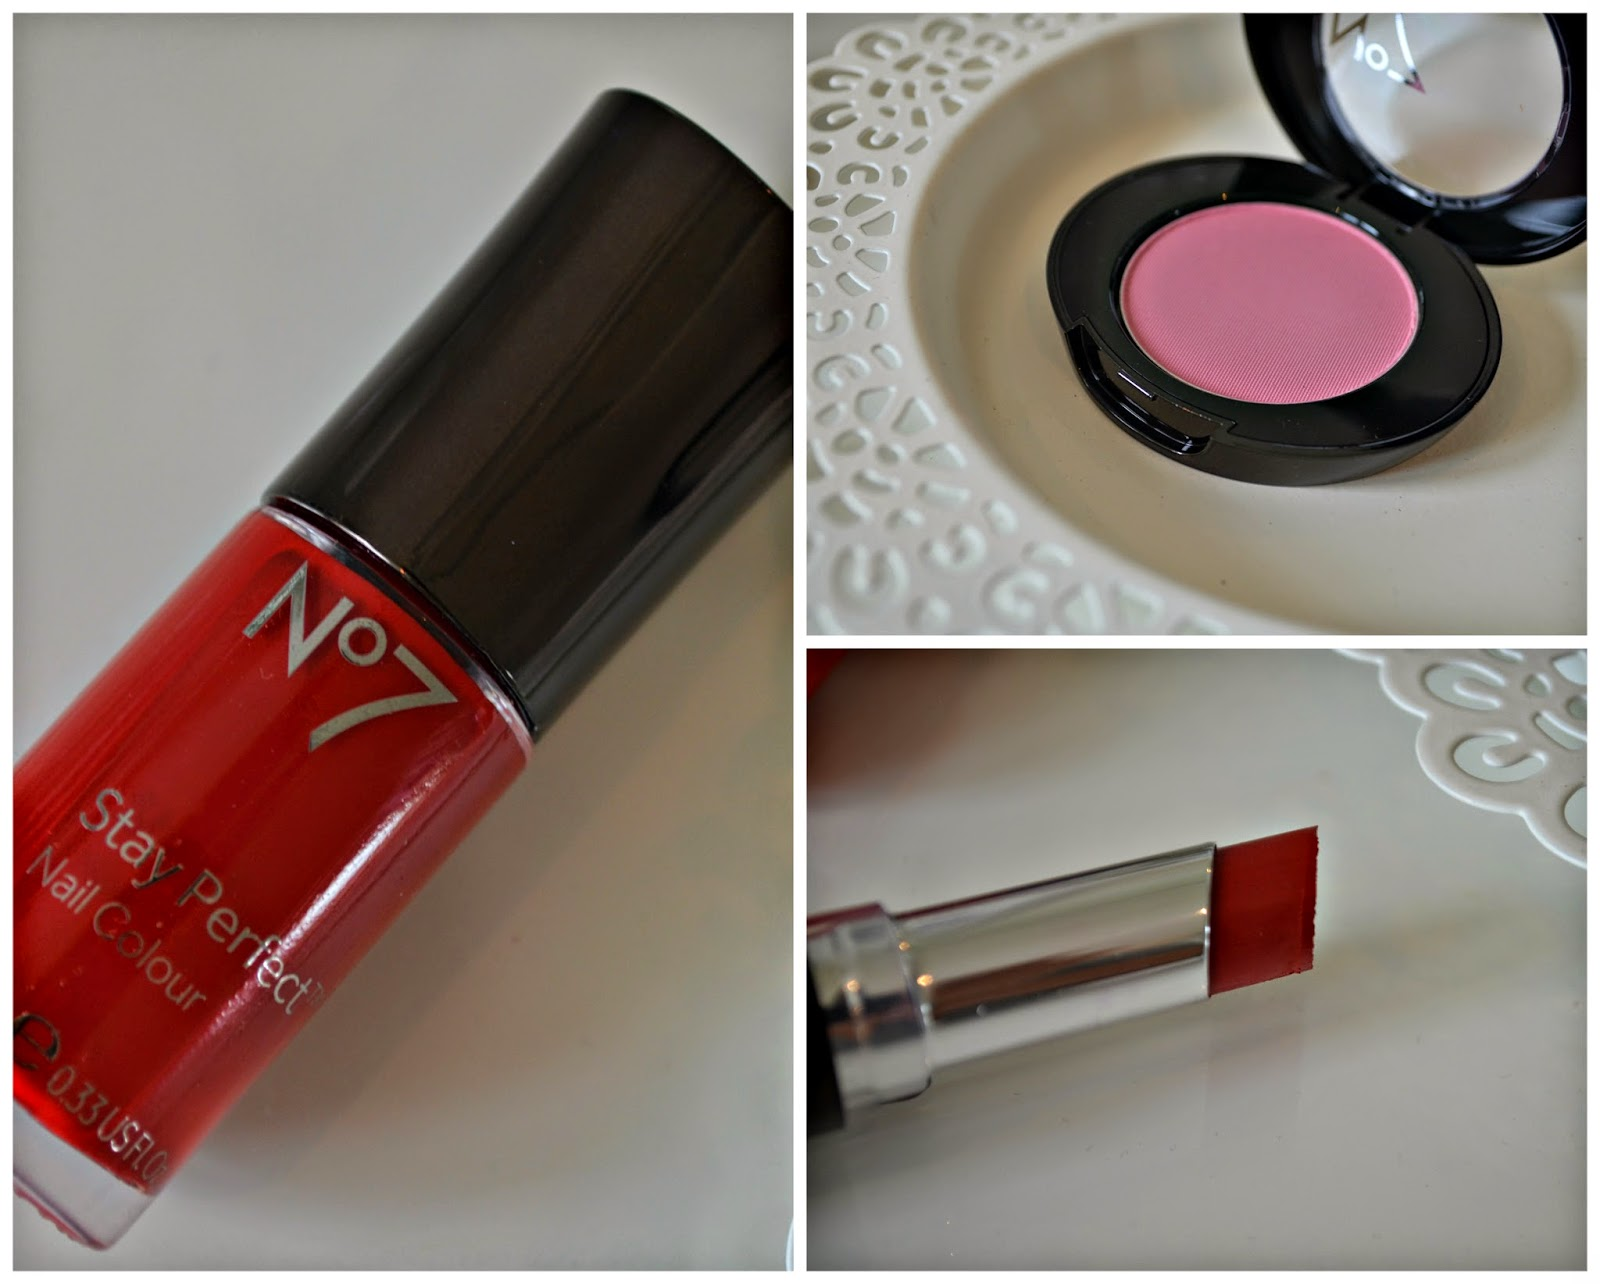 No 7 Summer Makeup: Look 3 The Red Collection